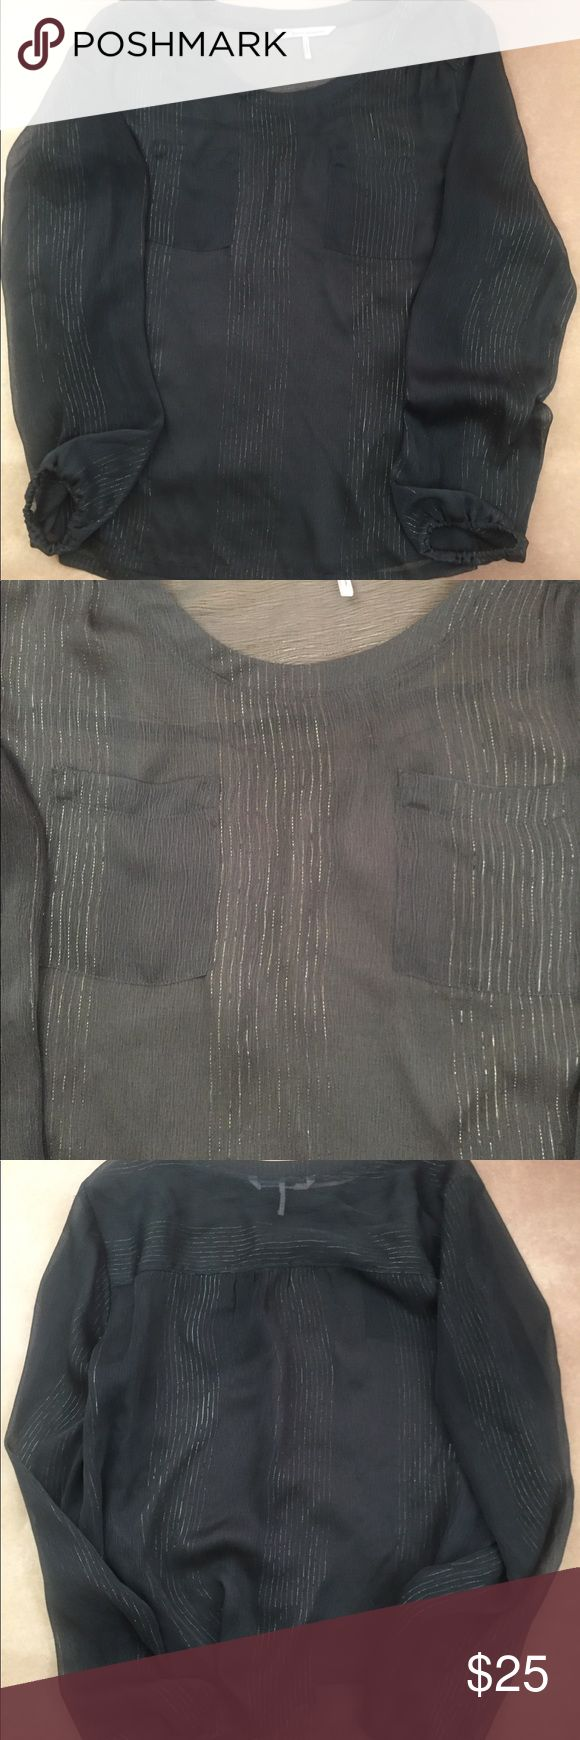 "French Connection Sheer Gray Top Large Pre-owned French Connection Sheer Gray Top Large in very good condition. Very light and feminine with two pockets on upper front, side slits and metallic gold shimmer threads.  Sleeves are gathered with elastic.  Approximate measurements laying flat: Bust - 22-1/2"" Shoulder seam to shoulder seam - 16"" Length 25""  No holes, rips or stains.  Smoke free environment.    Thank you for looking.  EPM1-B69-1-118 French Connection Tops"